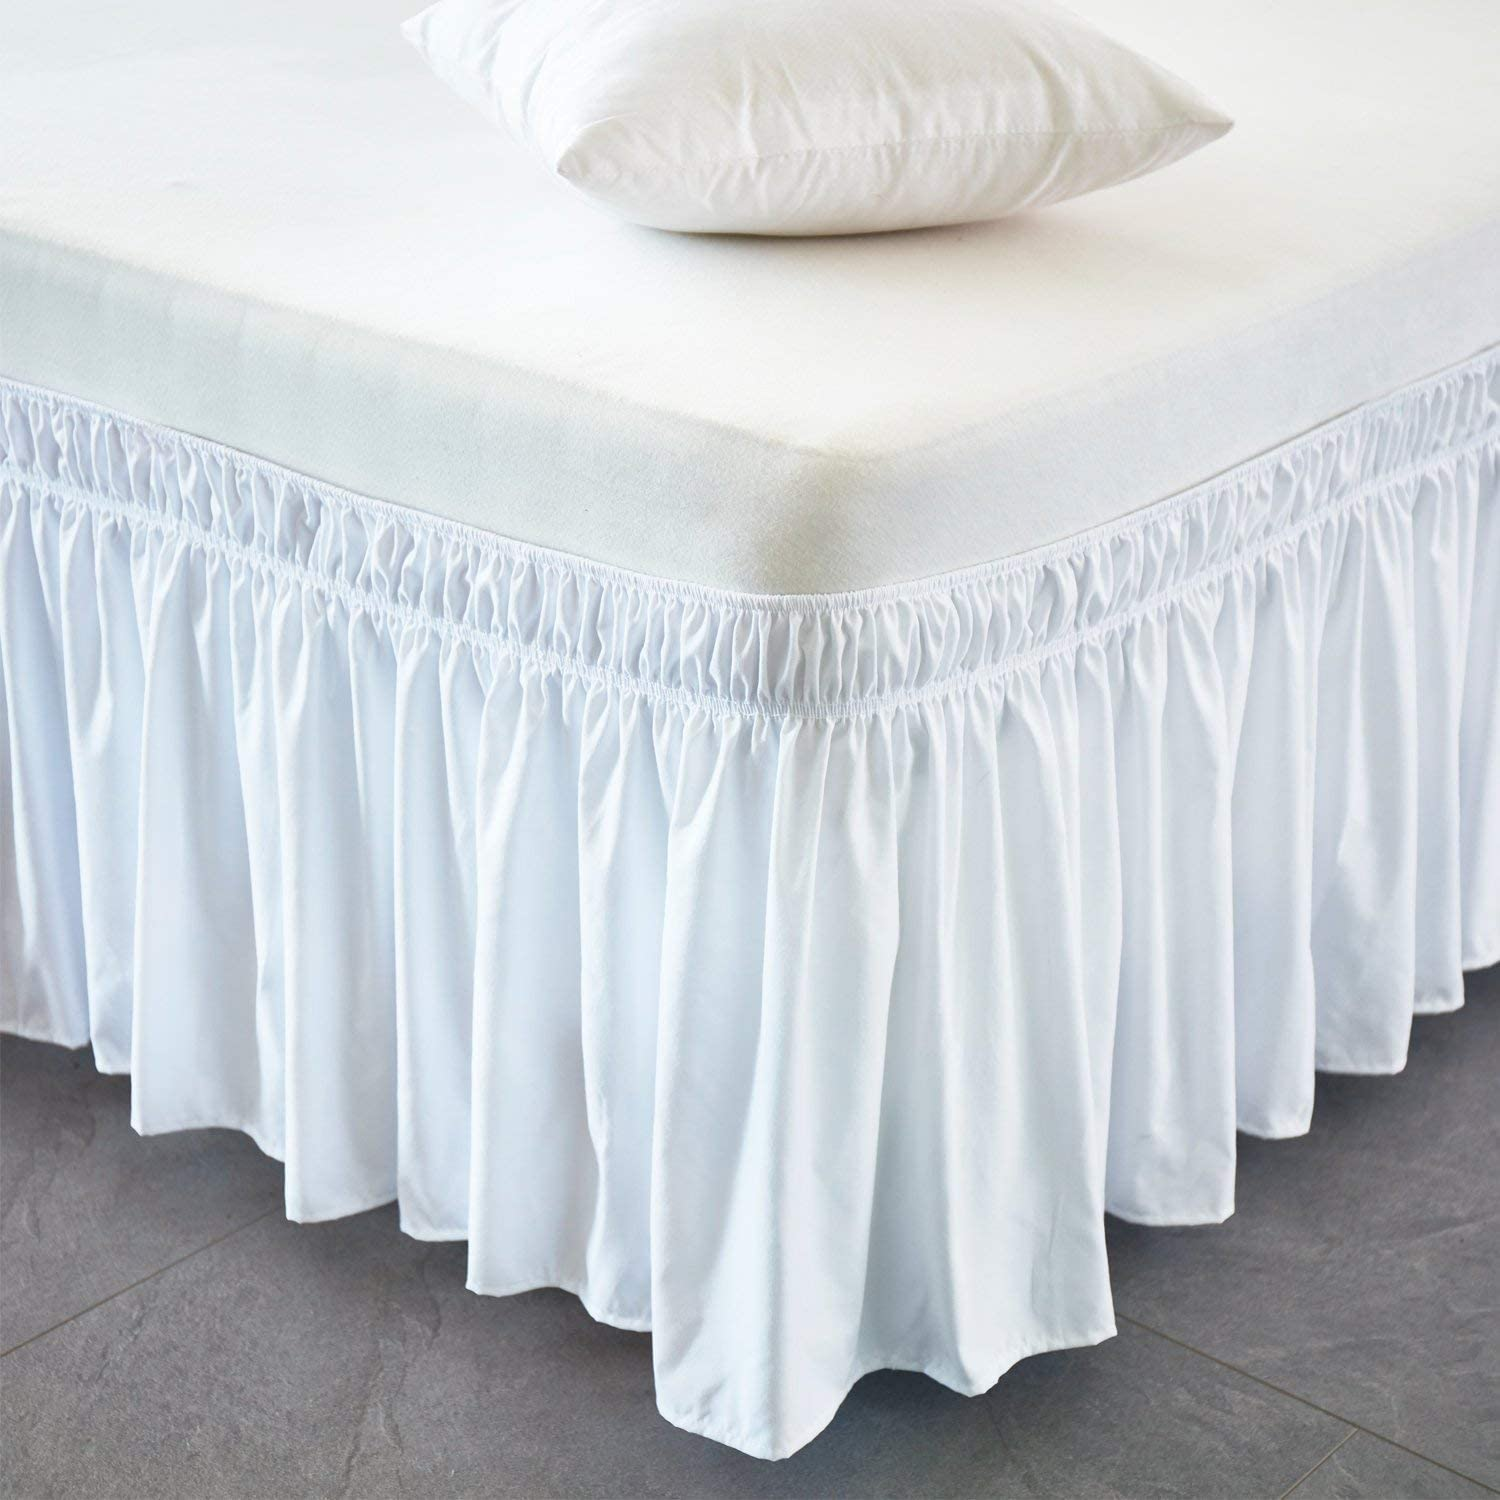 White Wrap Around Bed Skirt Three Fabric Size Silky Soft /& Wrinkle Free Classic Stylish Look in Your Bedroom Full-xl-12 inch Drop